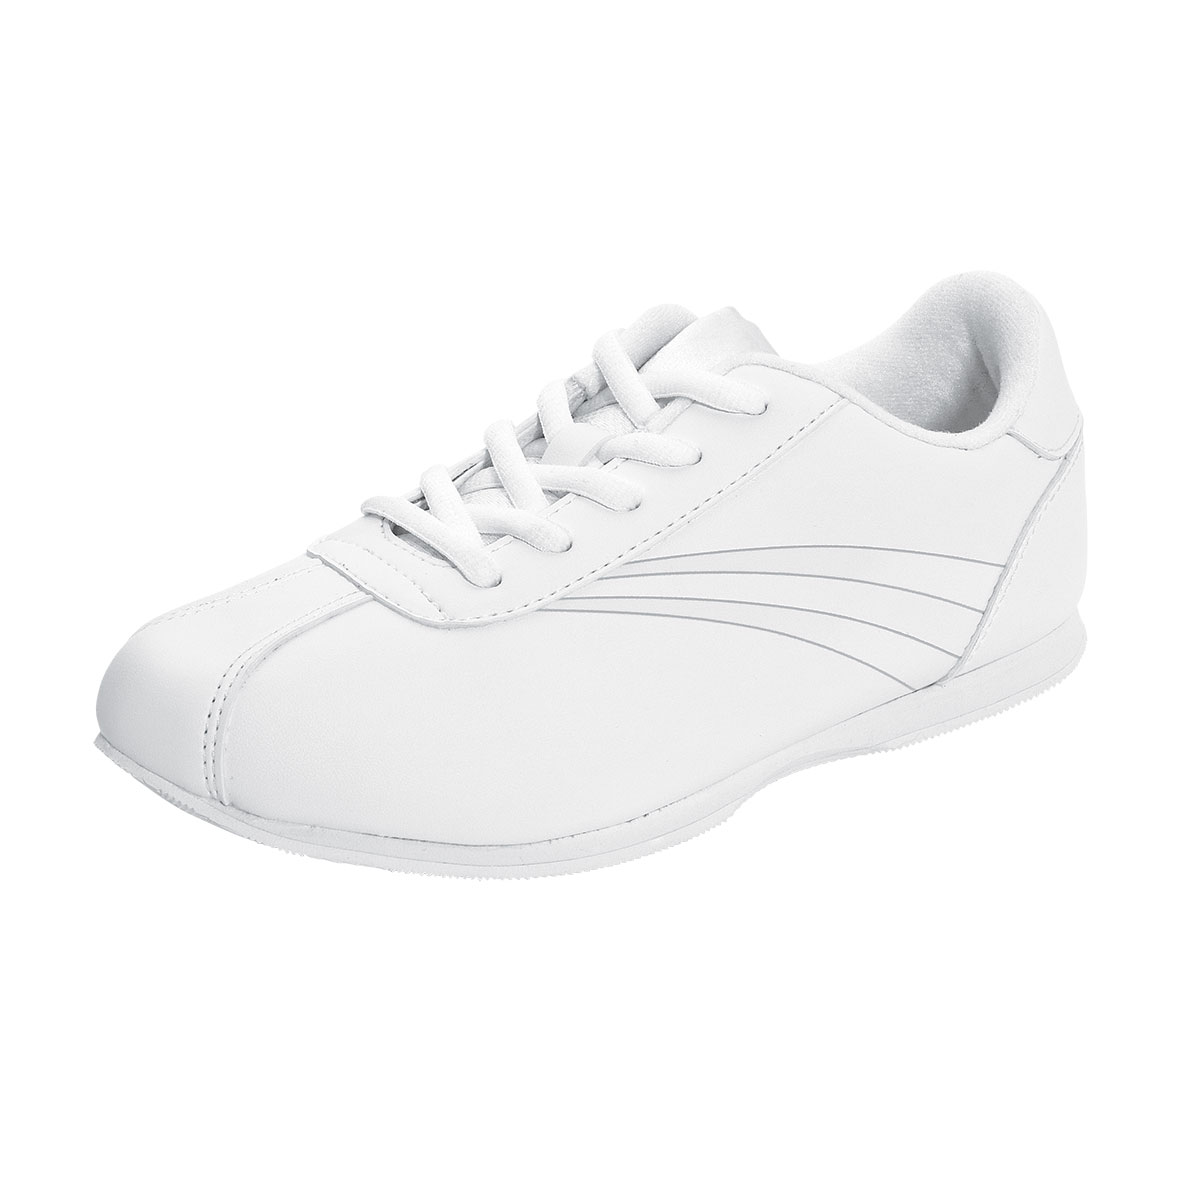 FierceFeats Cheer Shoes